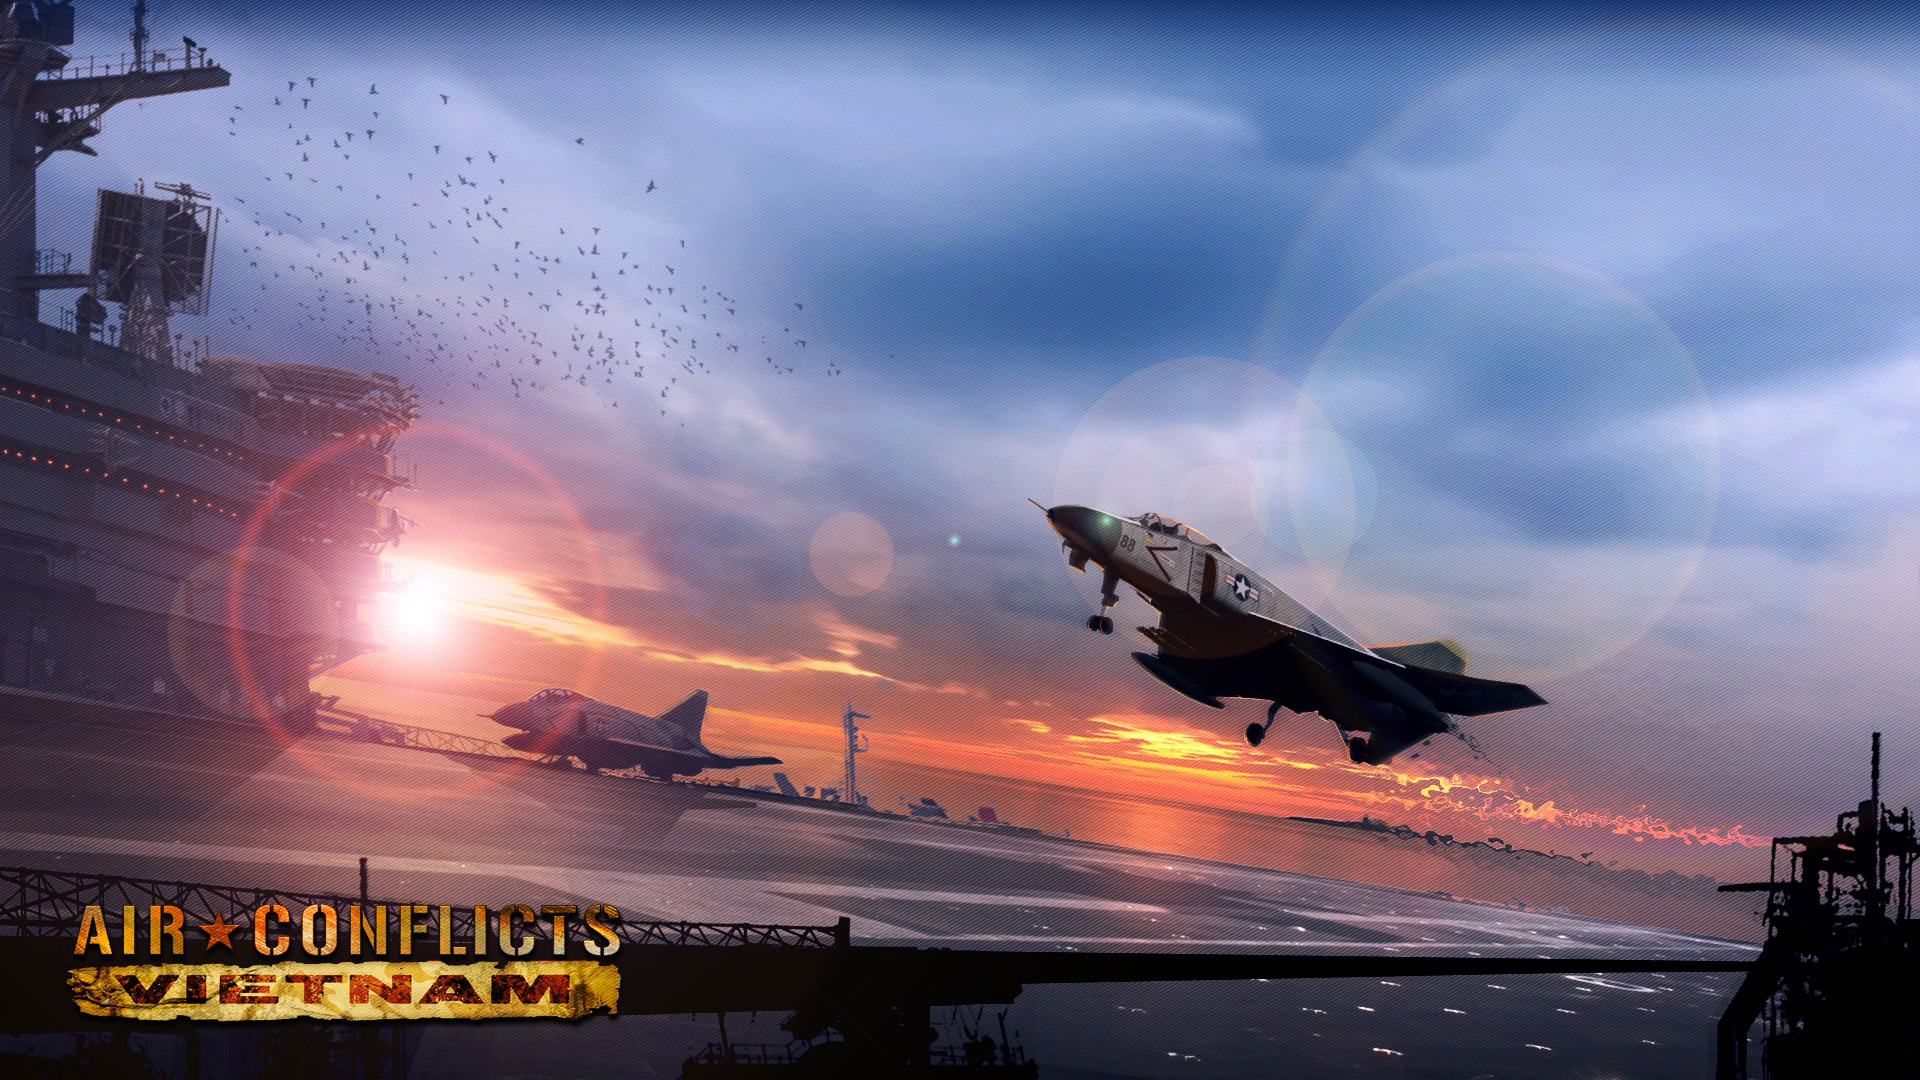 Free Air Conflicts: Vietnam Wallpaper in 1920x1080